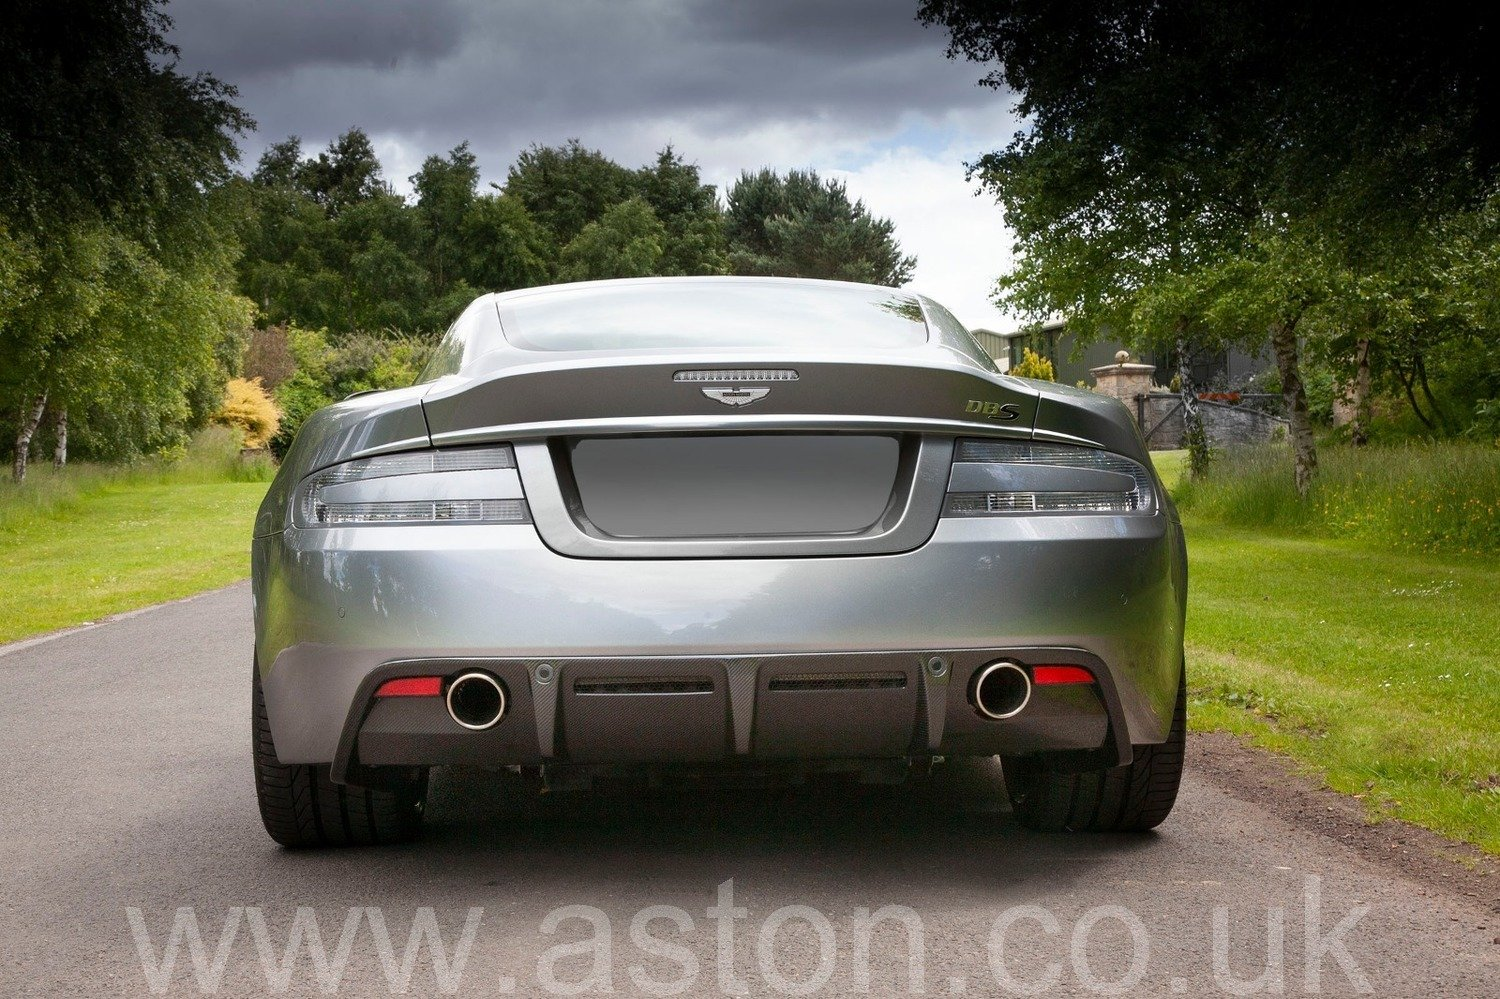 2012 Aston Martin DBS Automatic For Sale (picture 6 of 6)